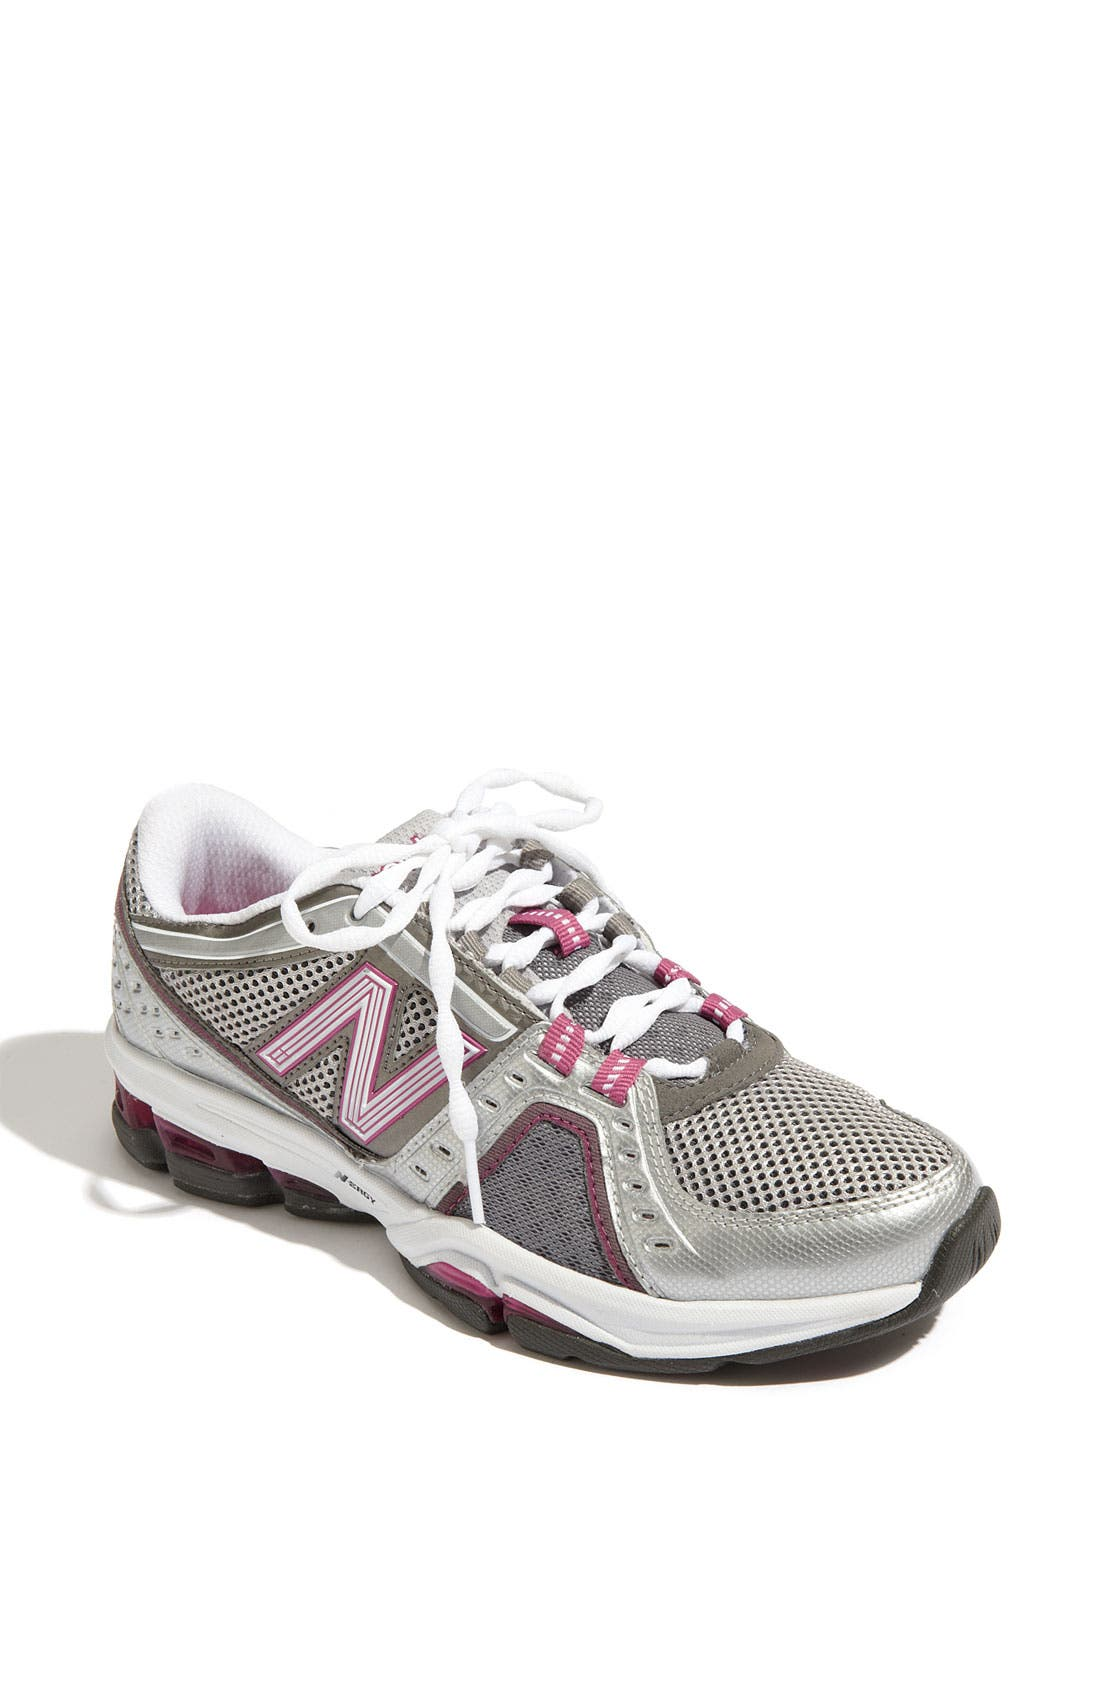 Alternate Image 1 Selected - New Balance '1211' Training Shoe (Women)